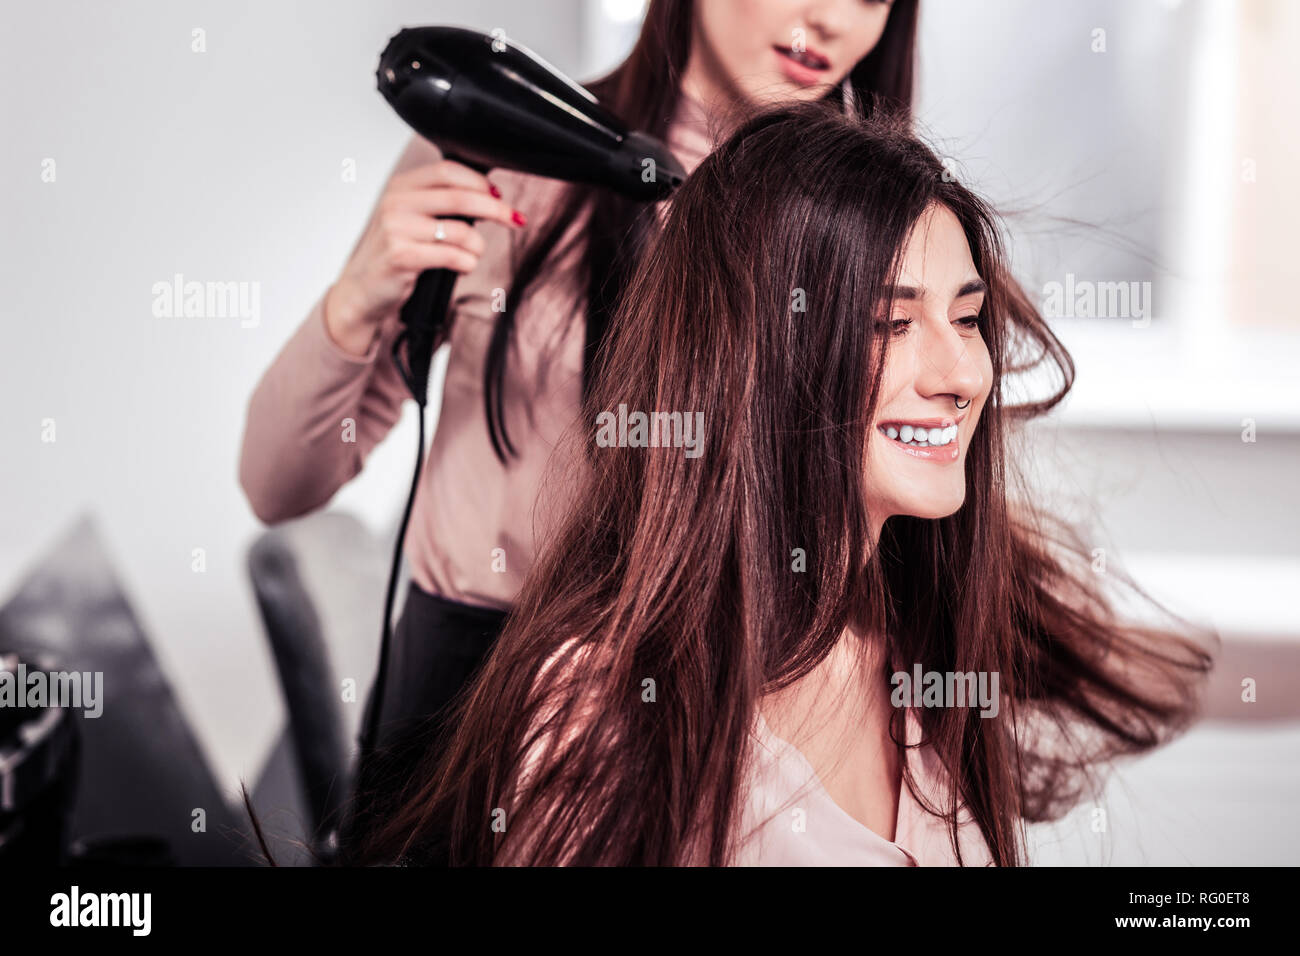 Delighted cheerful woman being in the hairdresser salon - Stock Image